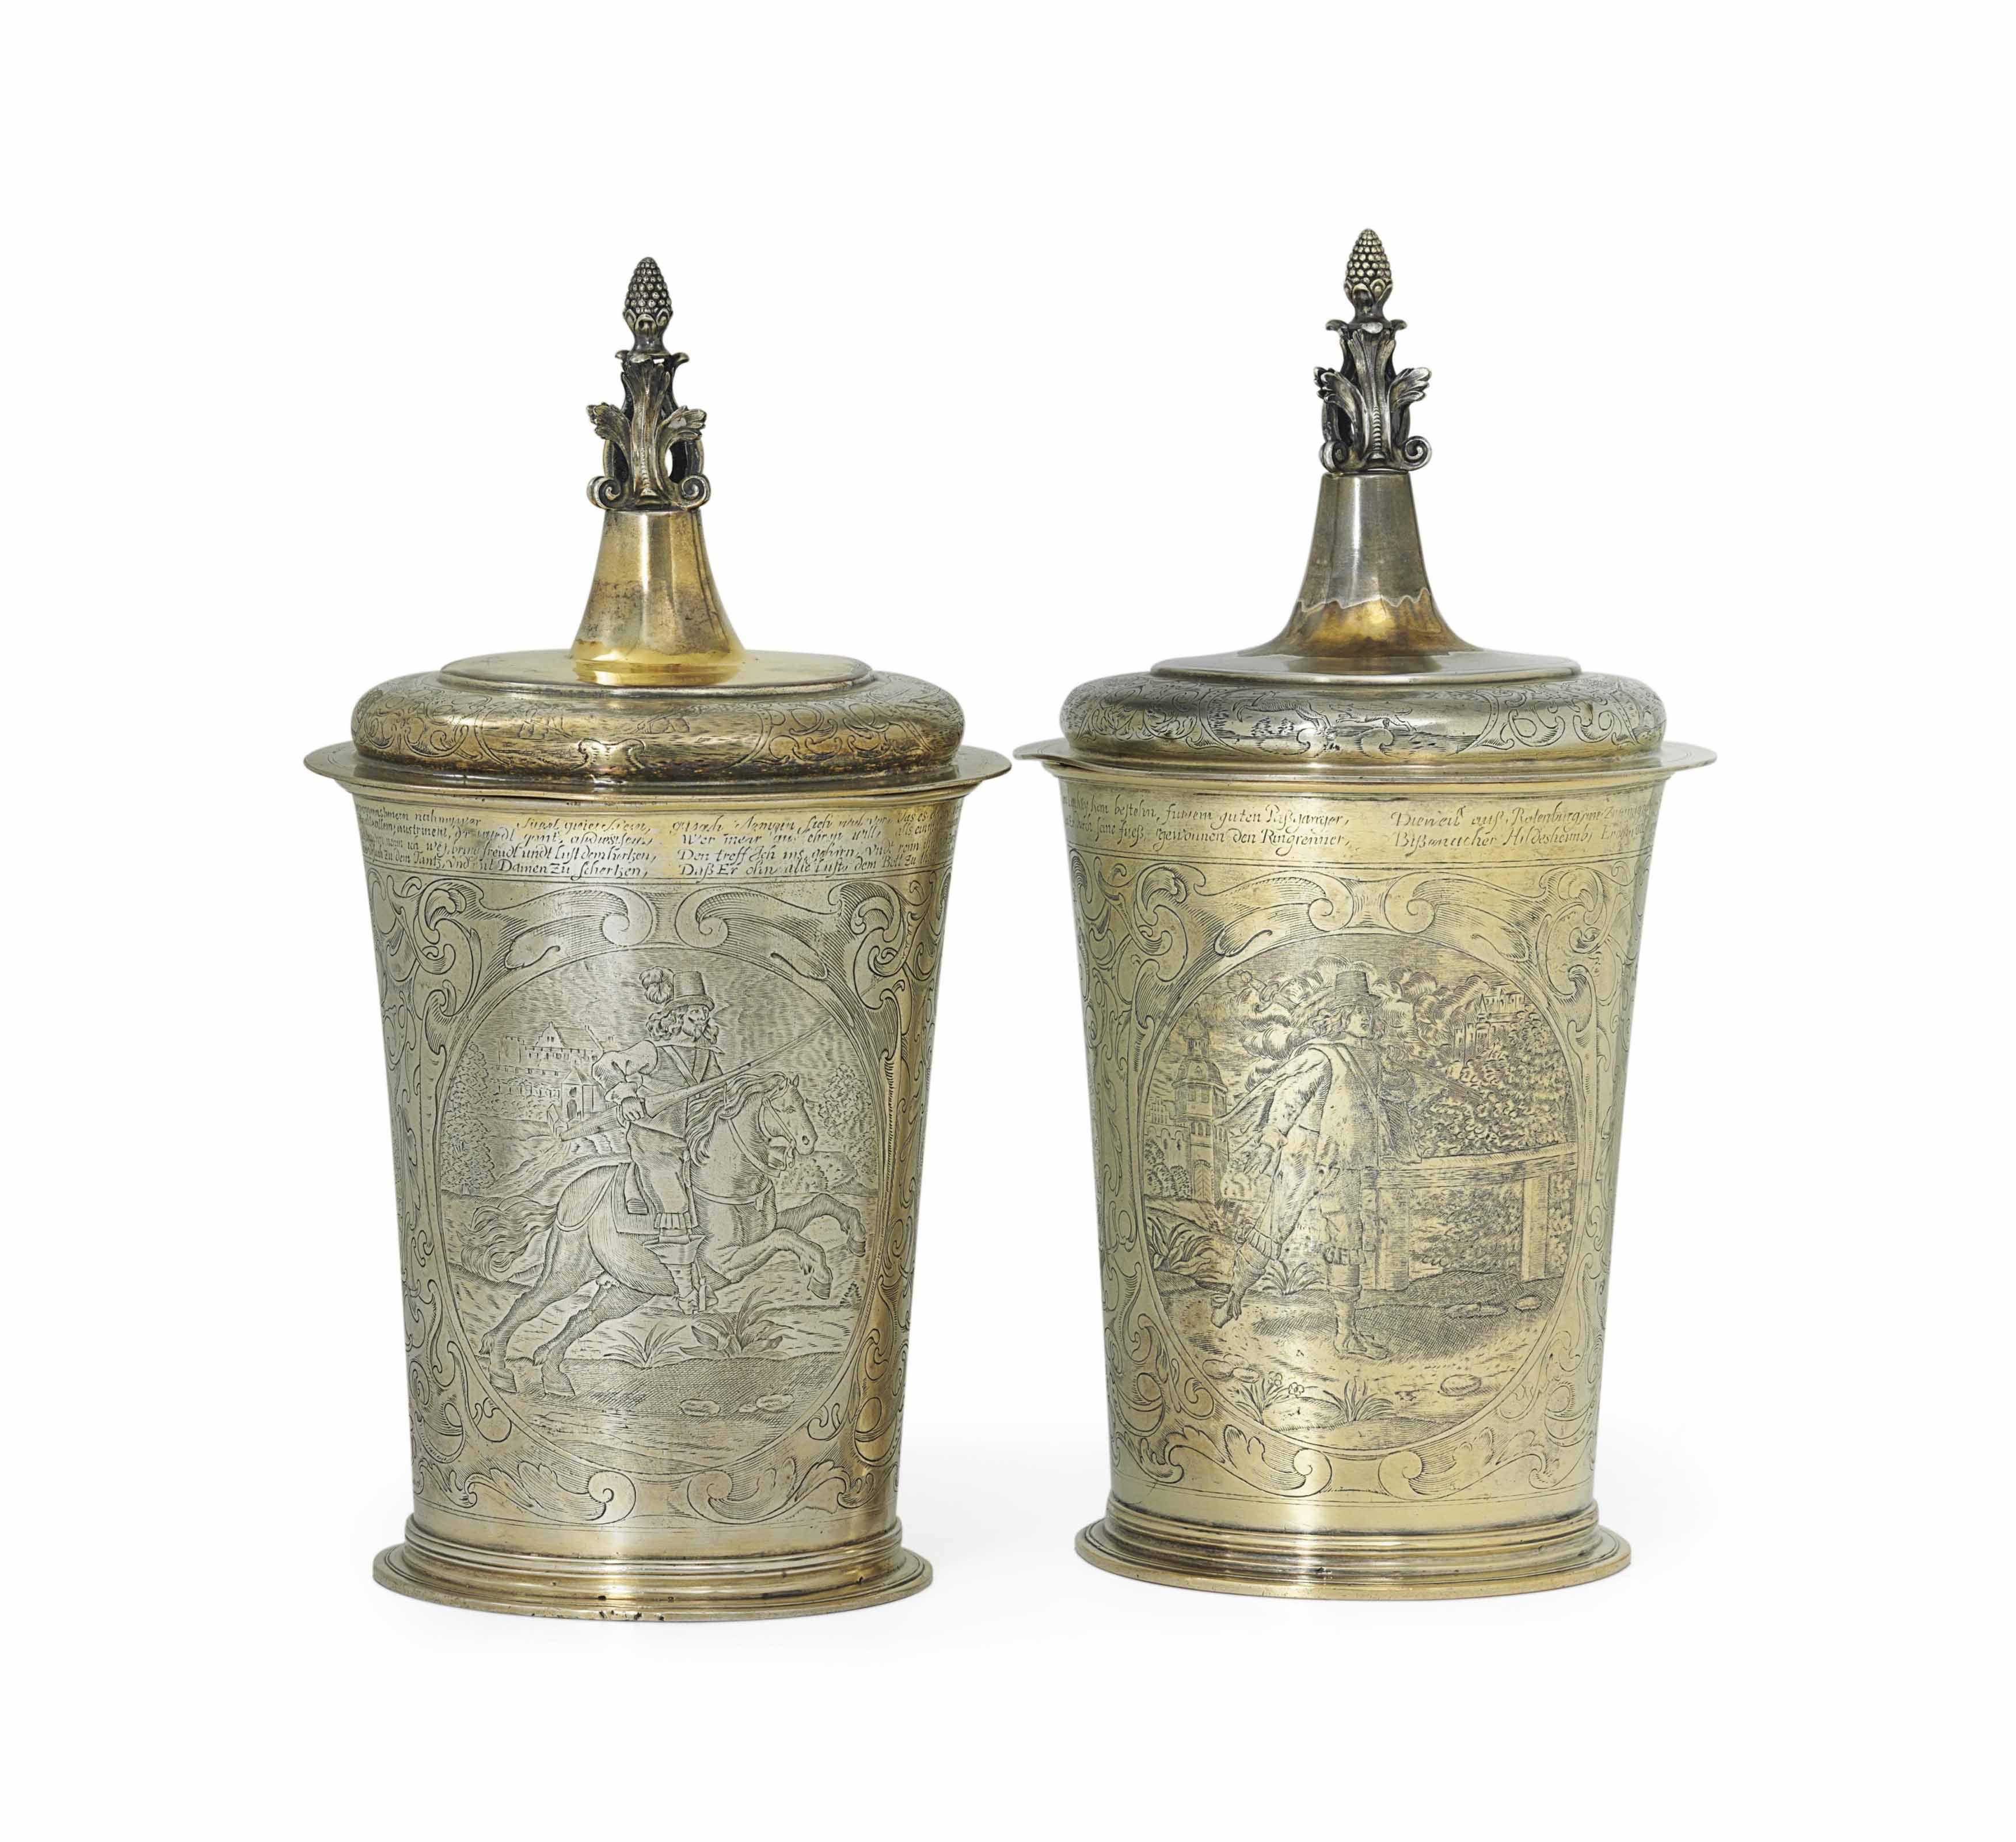 TWO LARGE GILT AND SILVERED ELECTROTYPES AFTER A BEAKER BY EVERT KETTWYCK, HAMBURG, CIRCA 1640